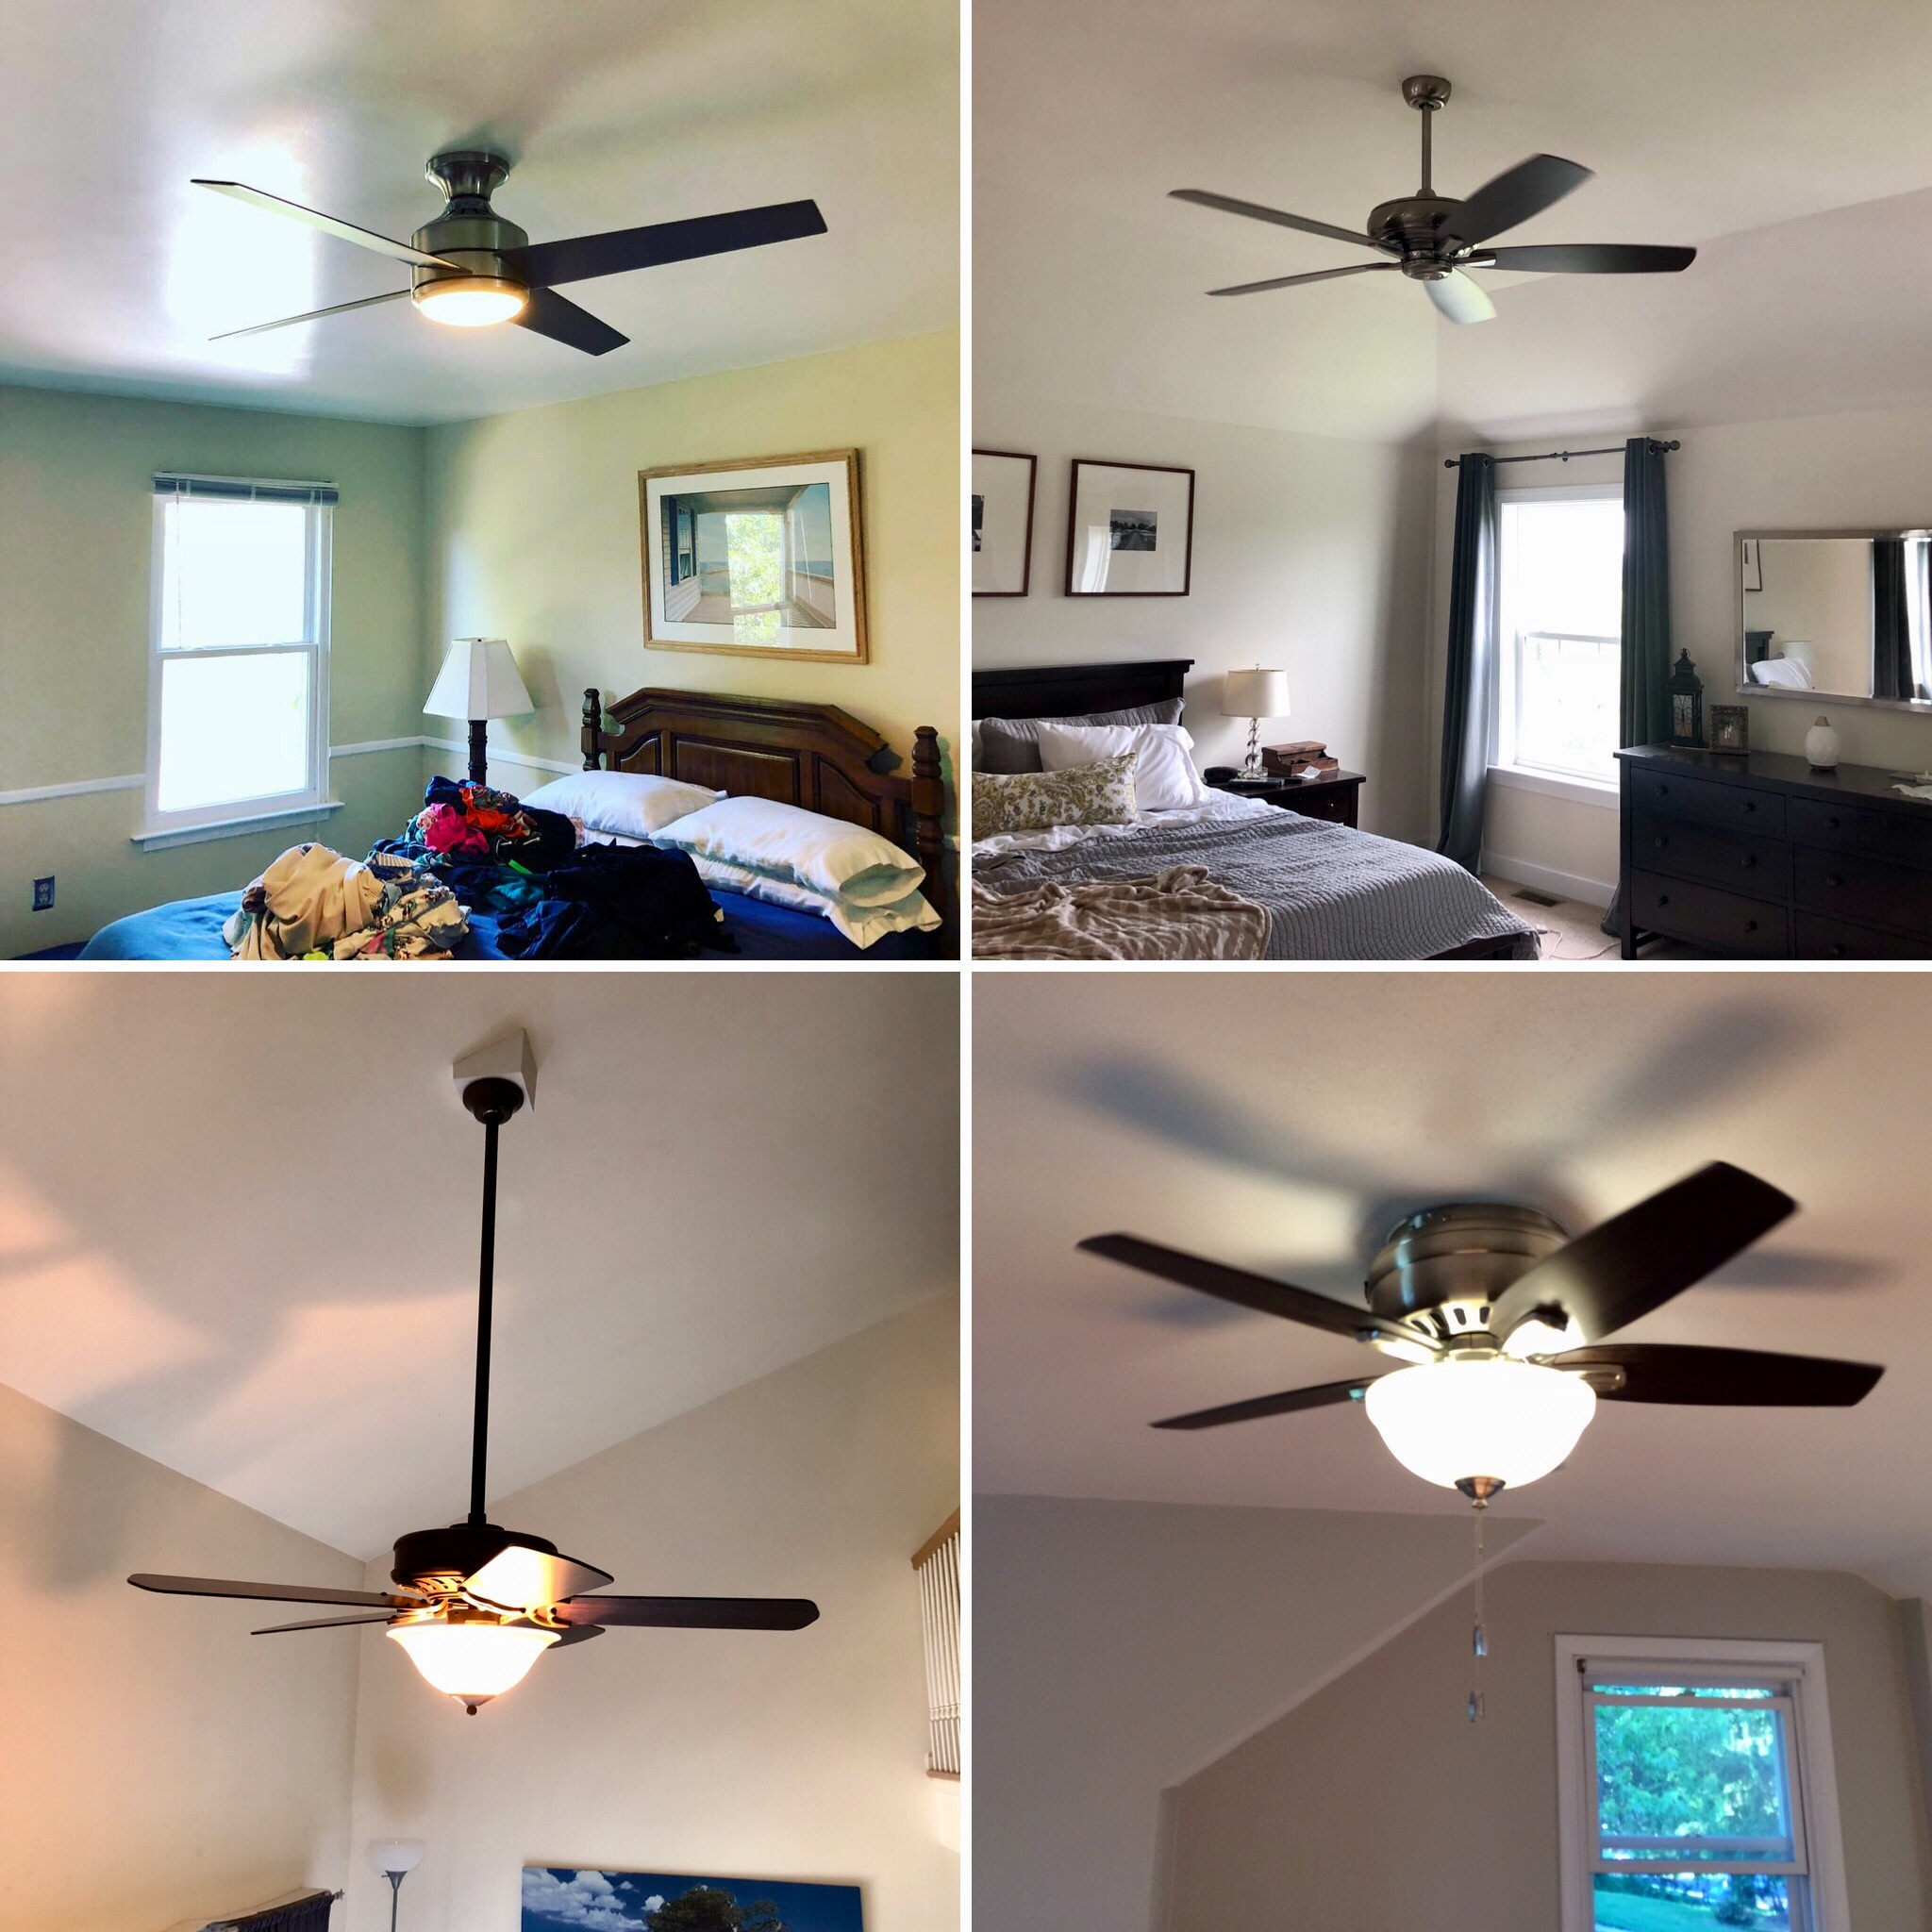 replace or repair my ceiling fan